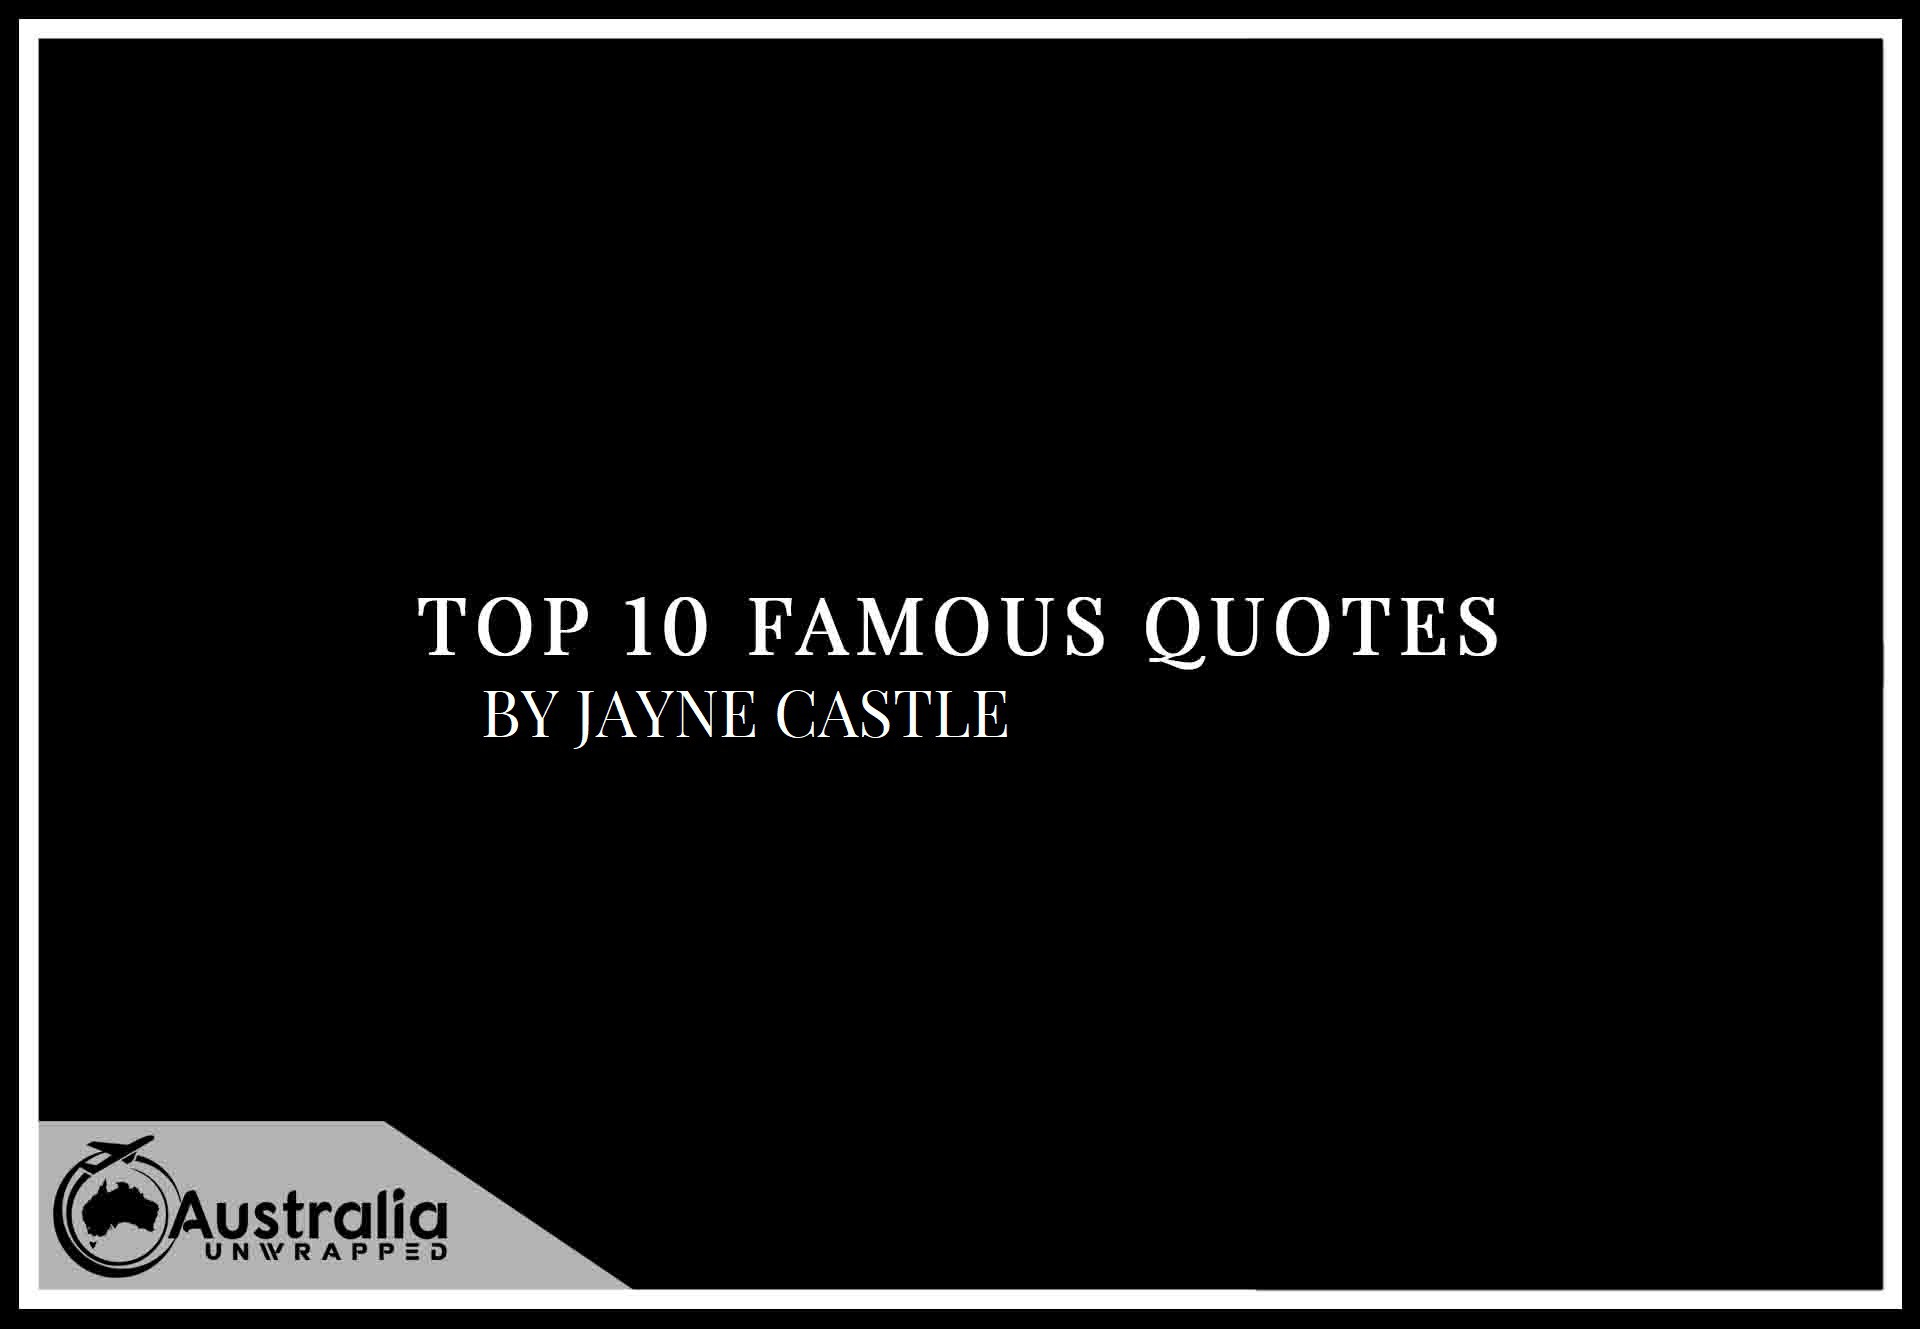 Top 10 Famous Quotes by Author Jayne Castle